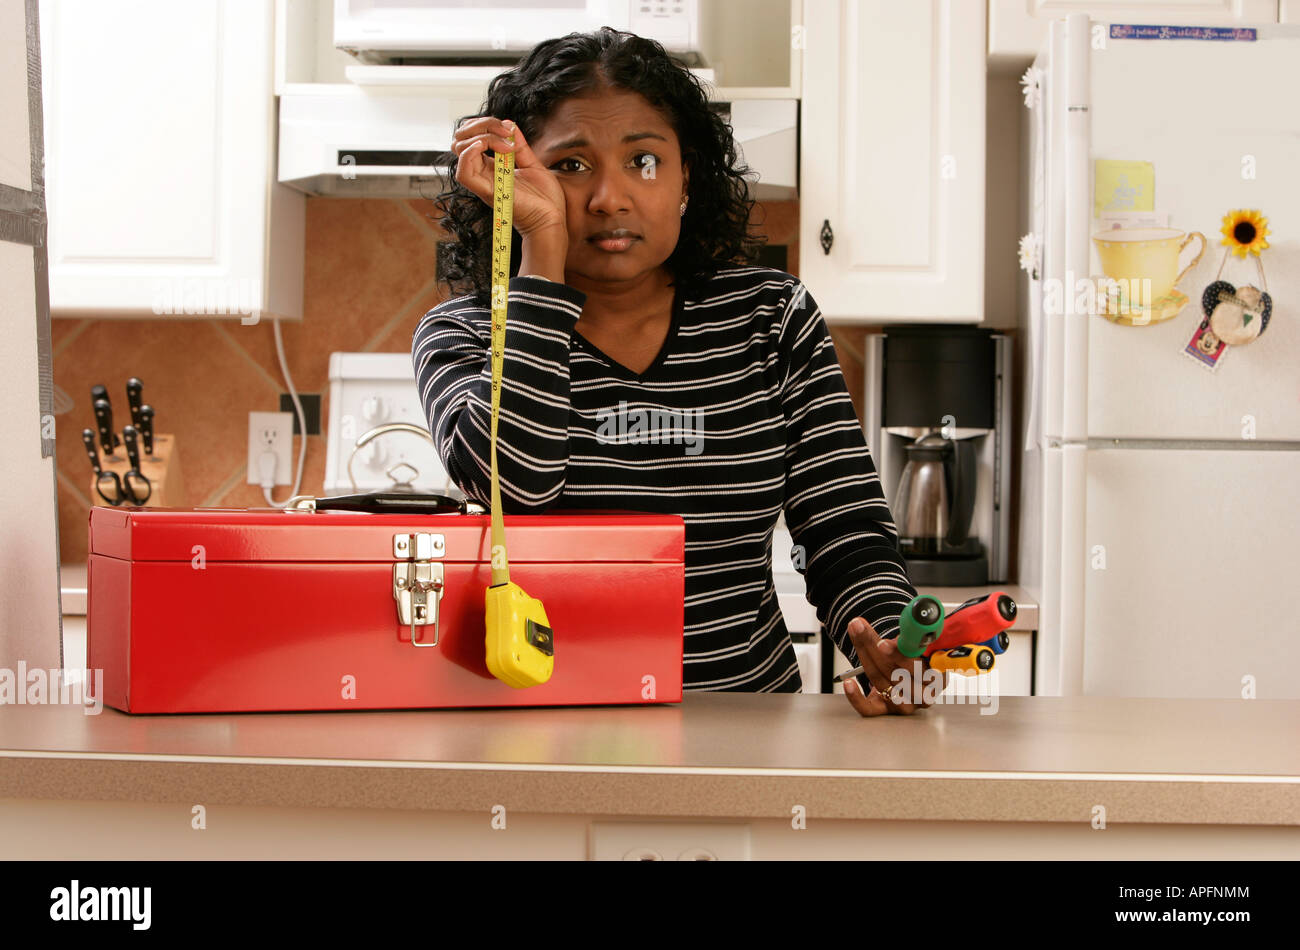 Woman looking hopeless with toolbox and tools - Stock Image